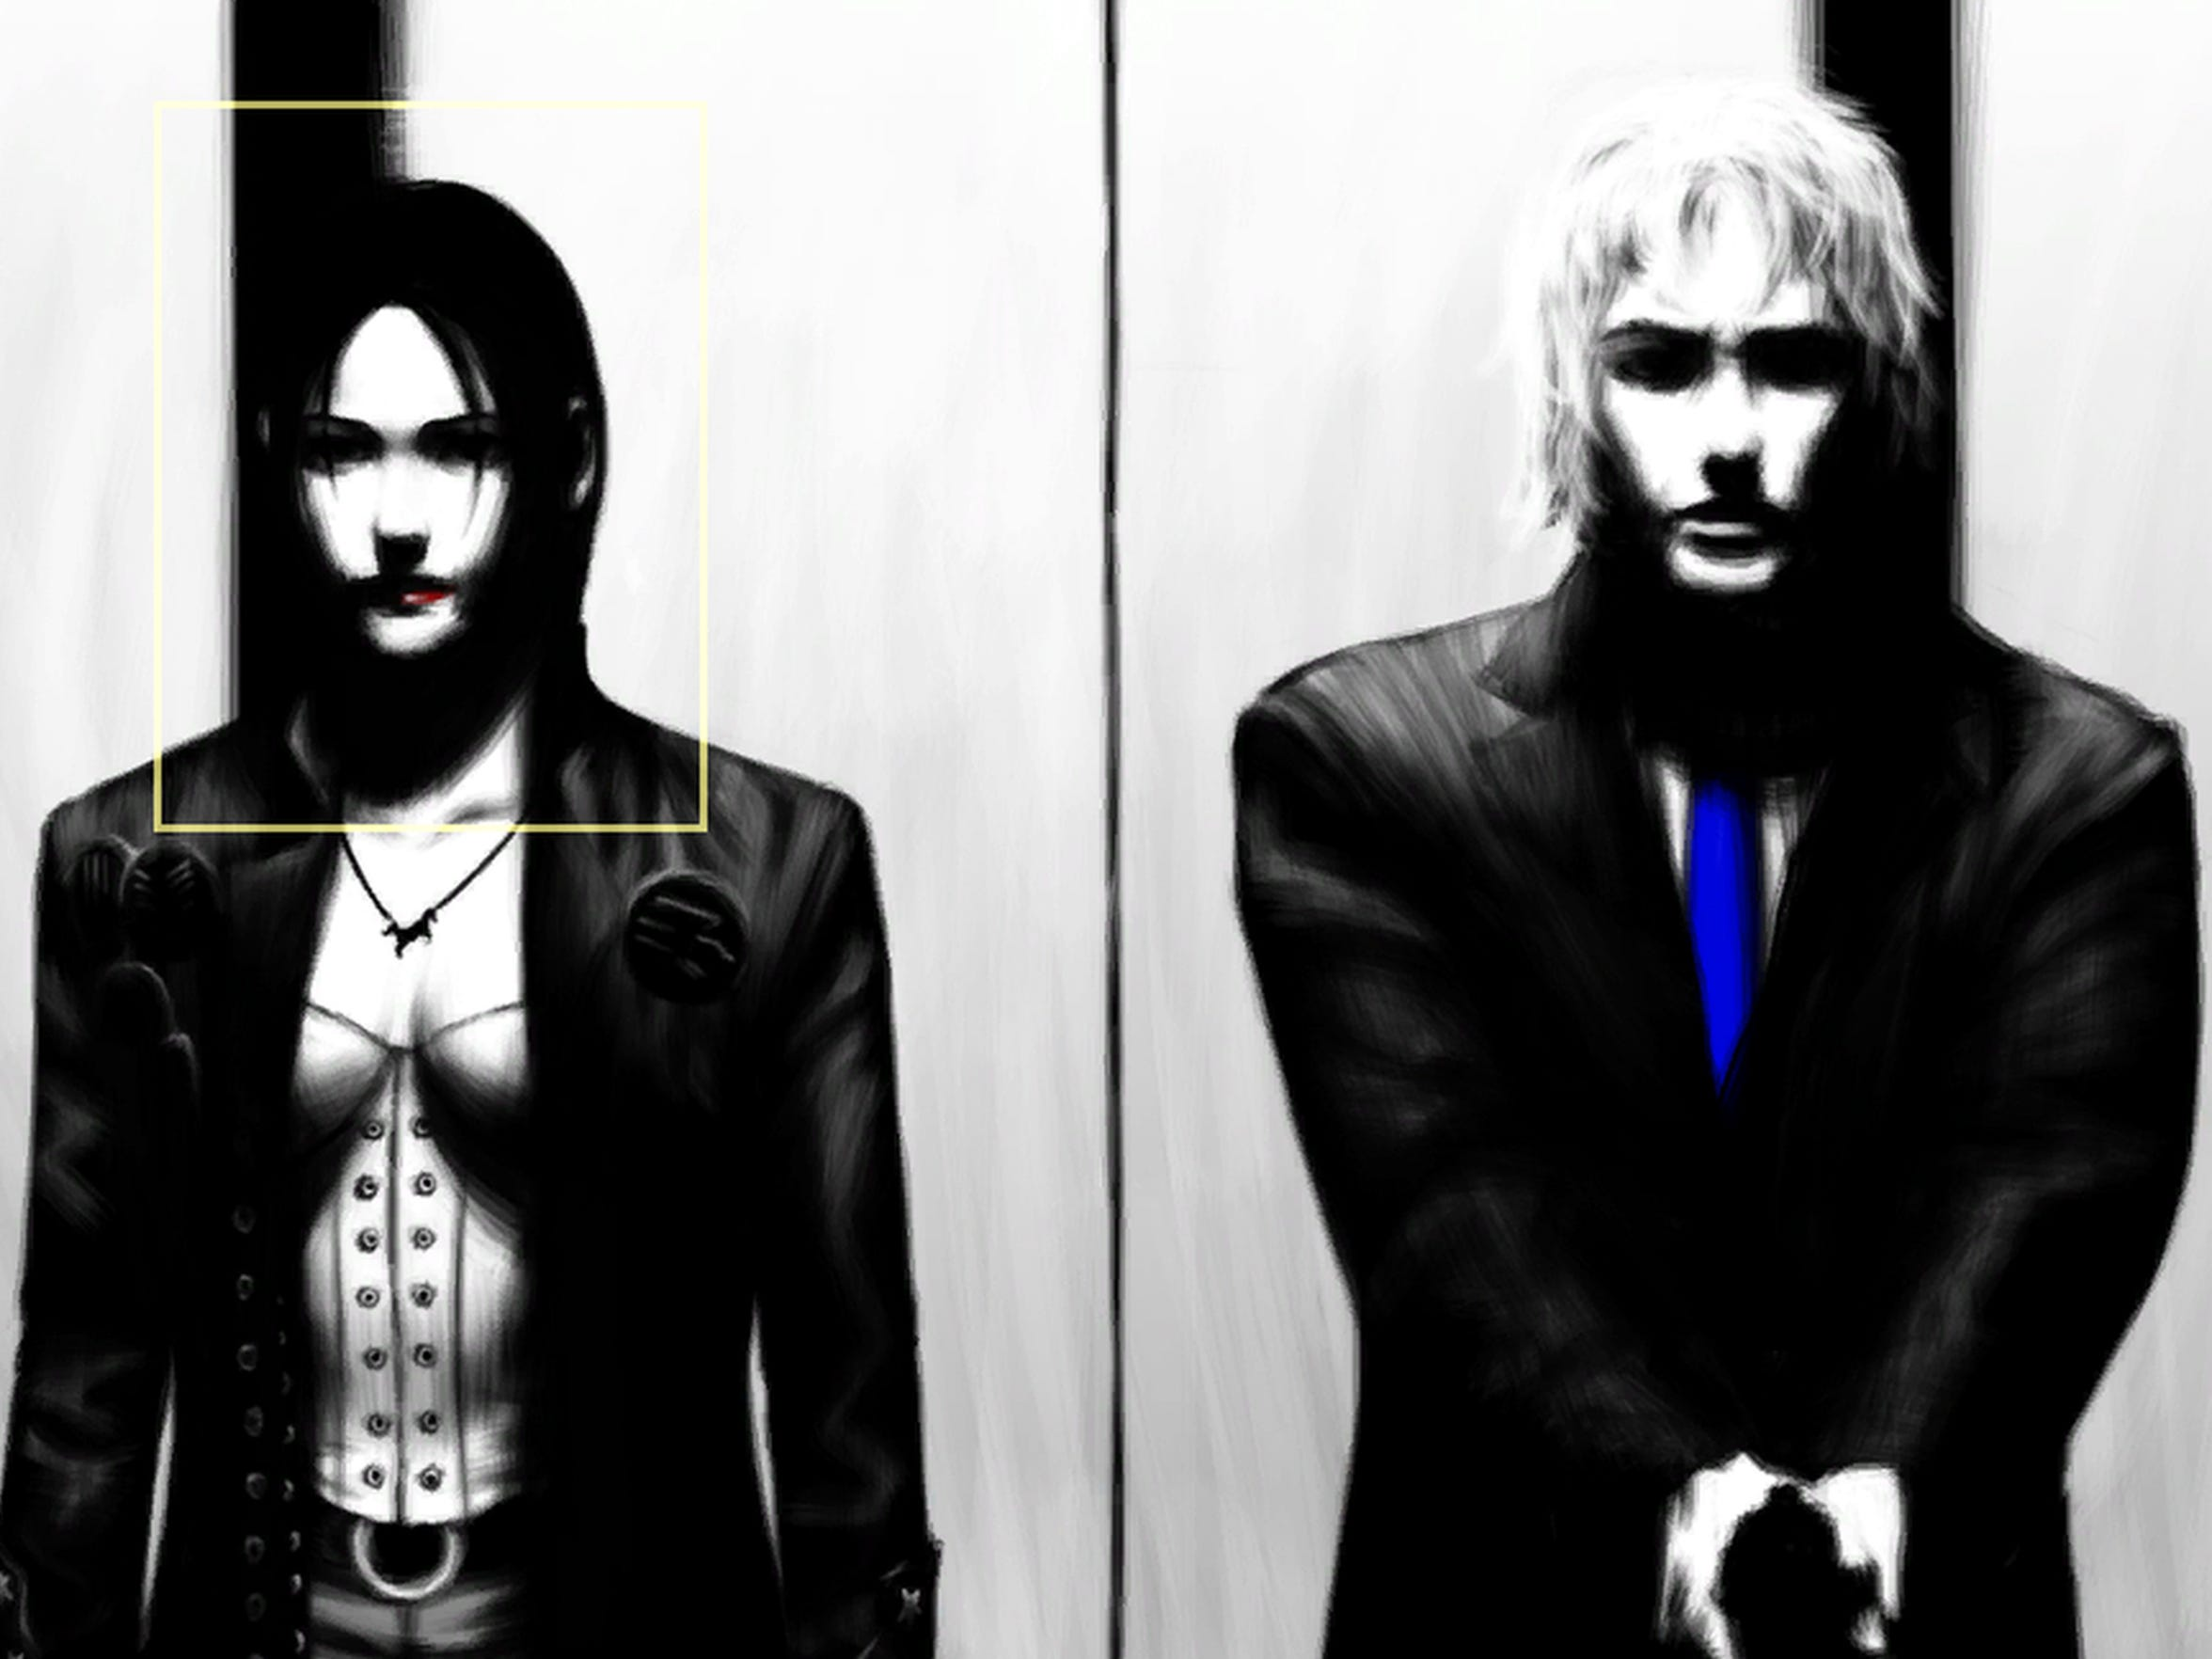 The 25th Ward: The Silver Case, PS4.